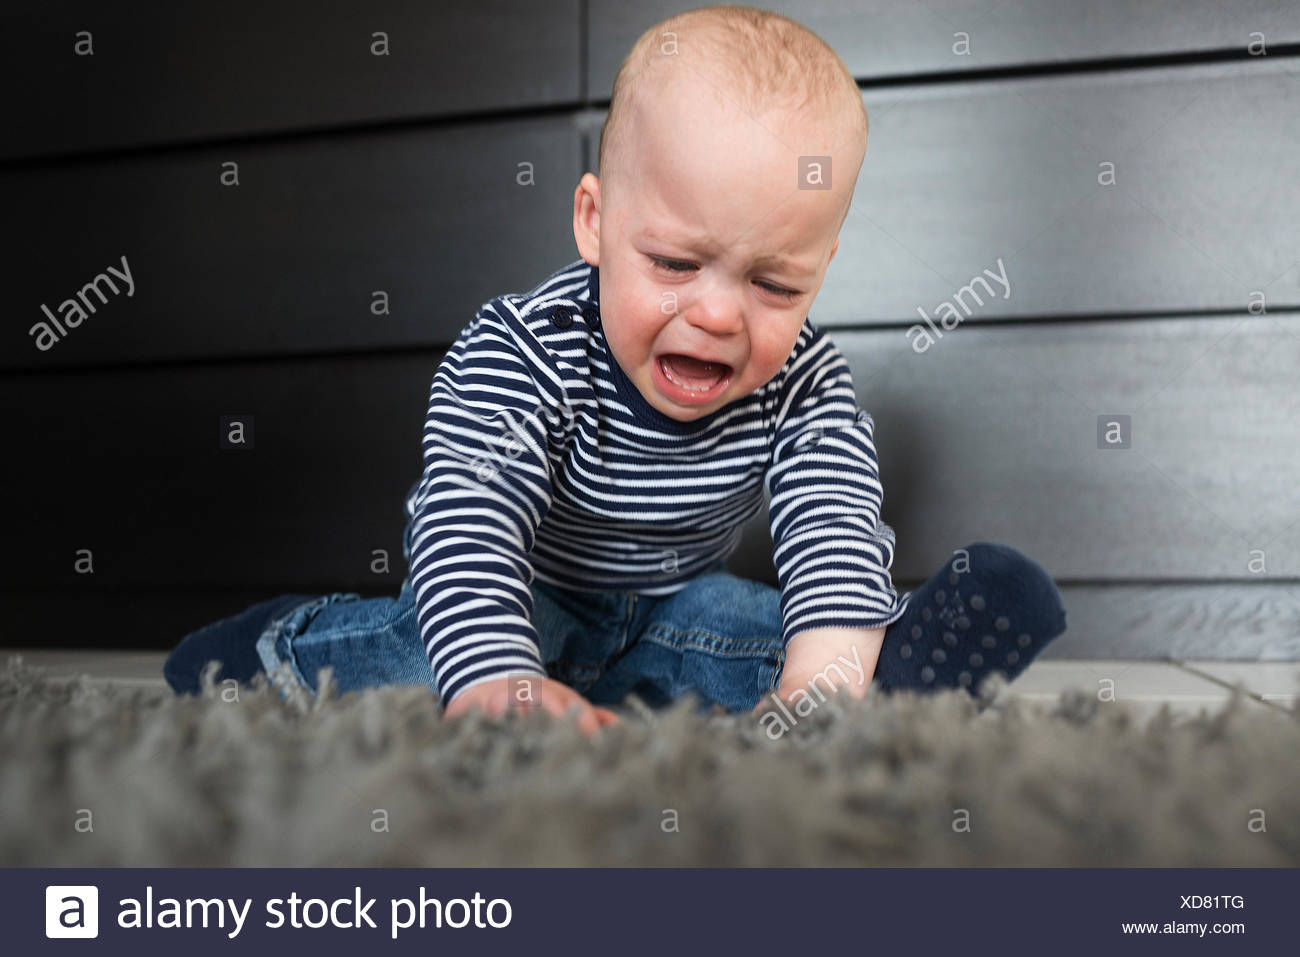 Crying baby boy sitting on rug in living room - Stock Image